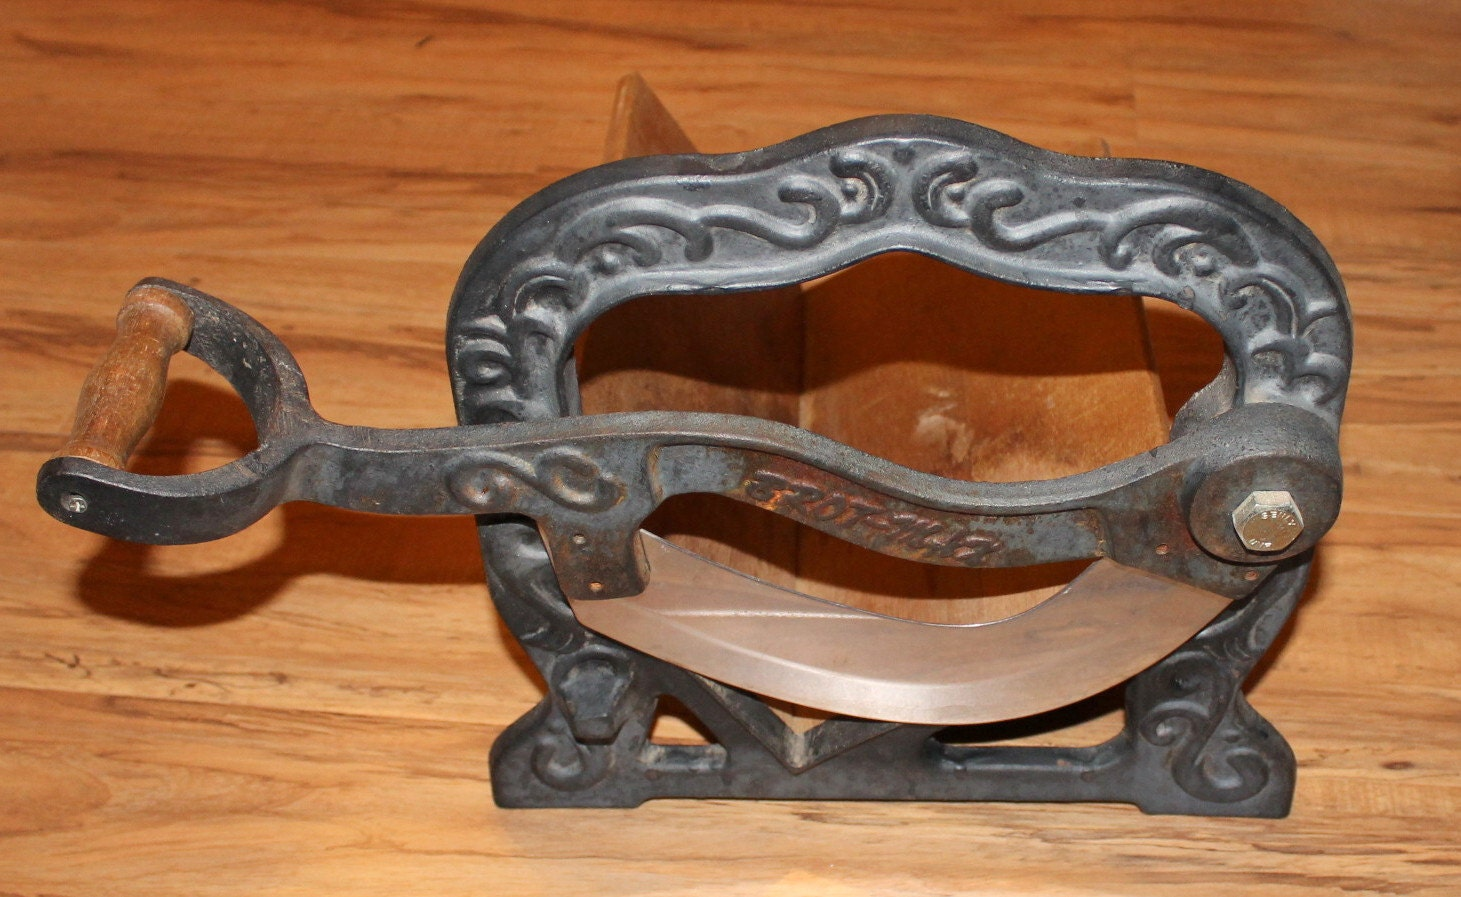 Vintage cast iron guillotine cutter slicer bread cheese meat